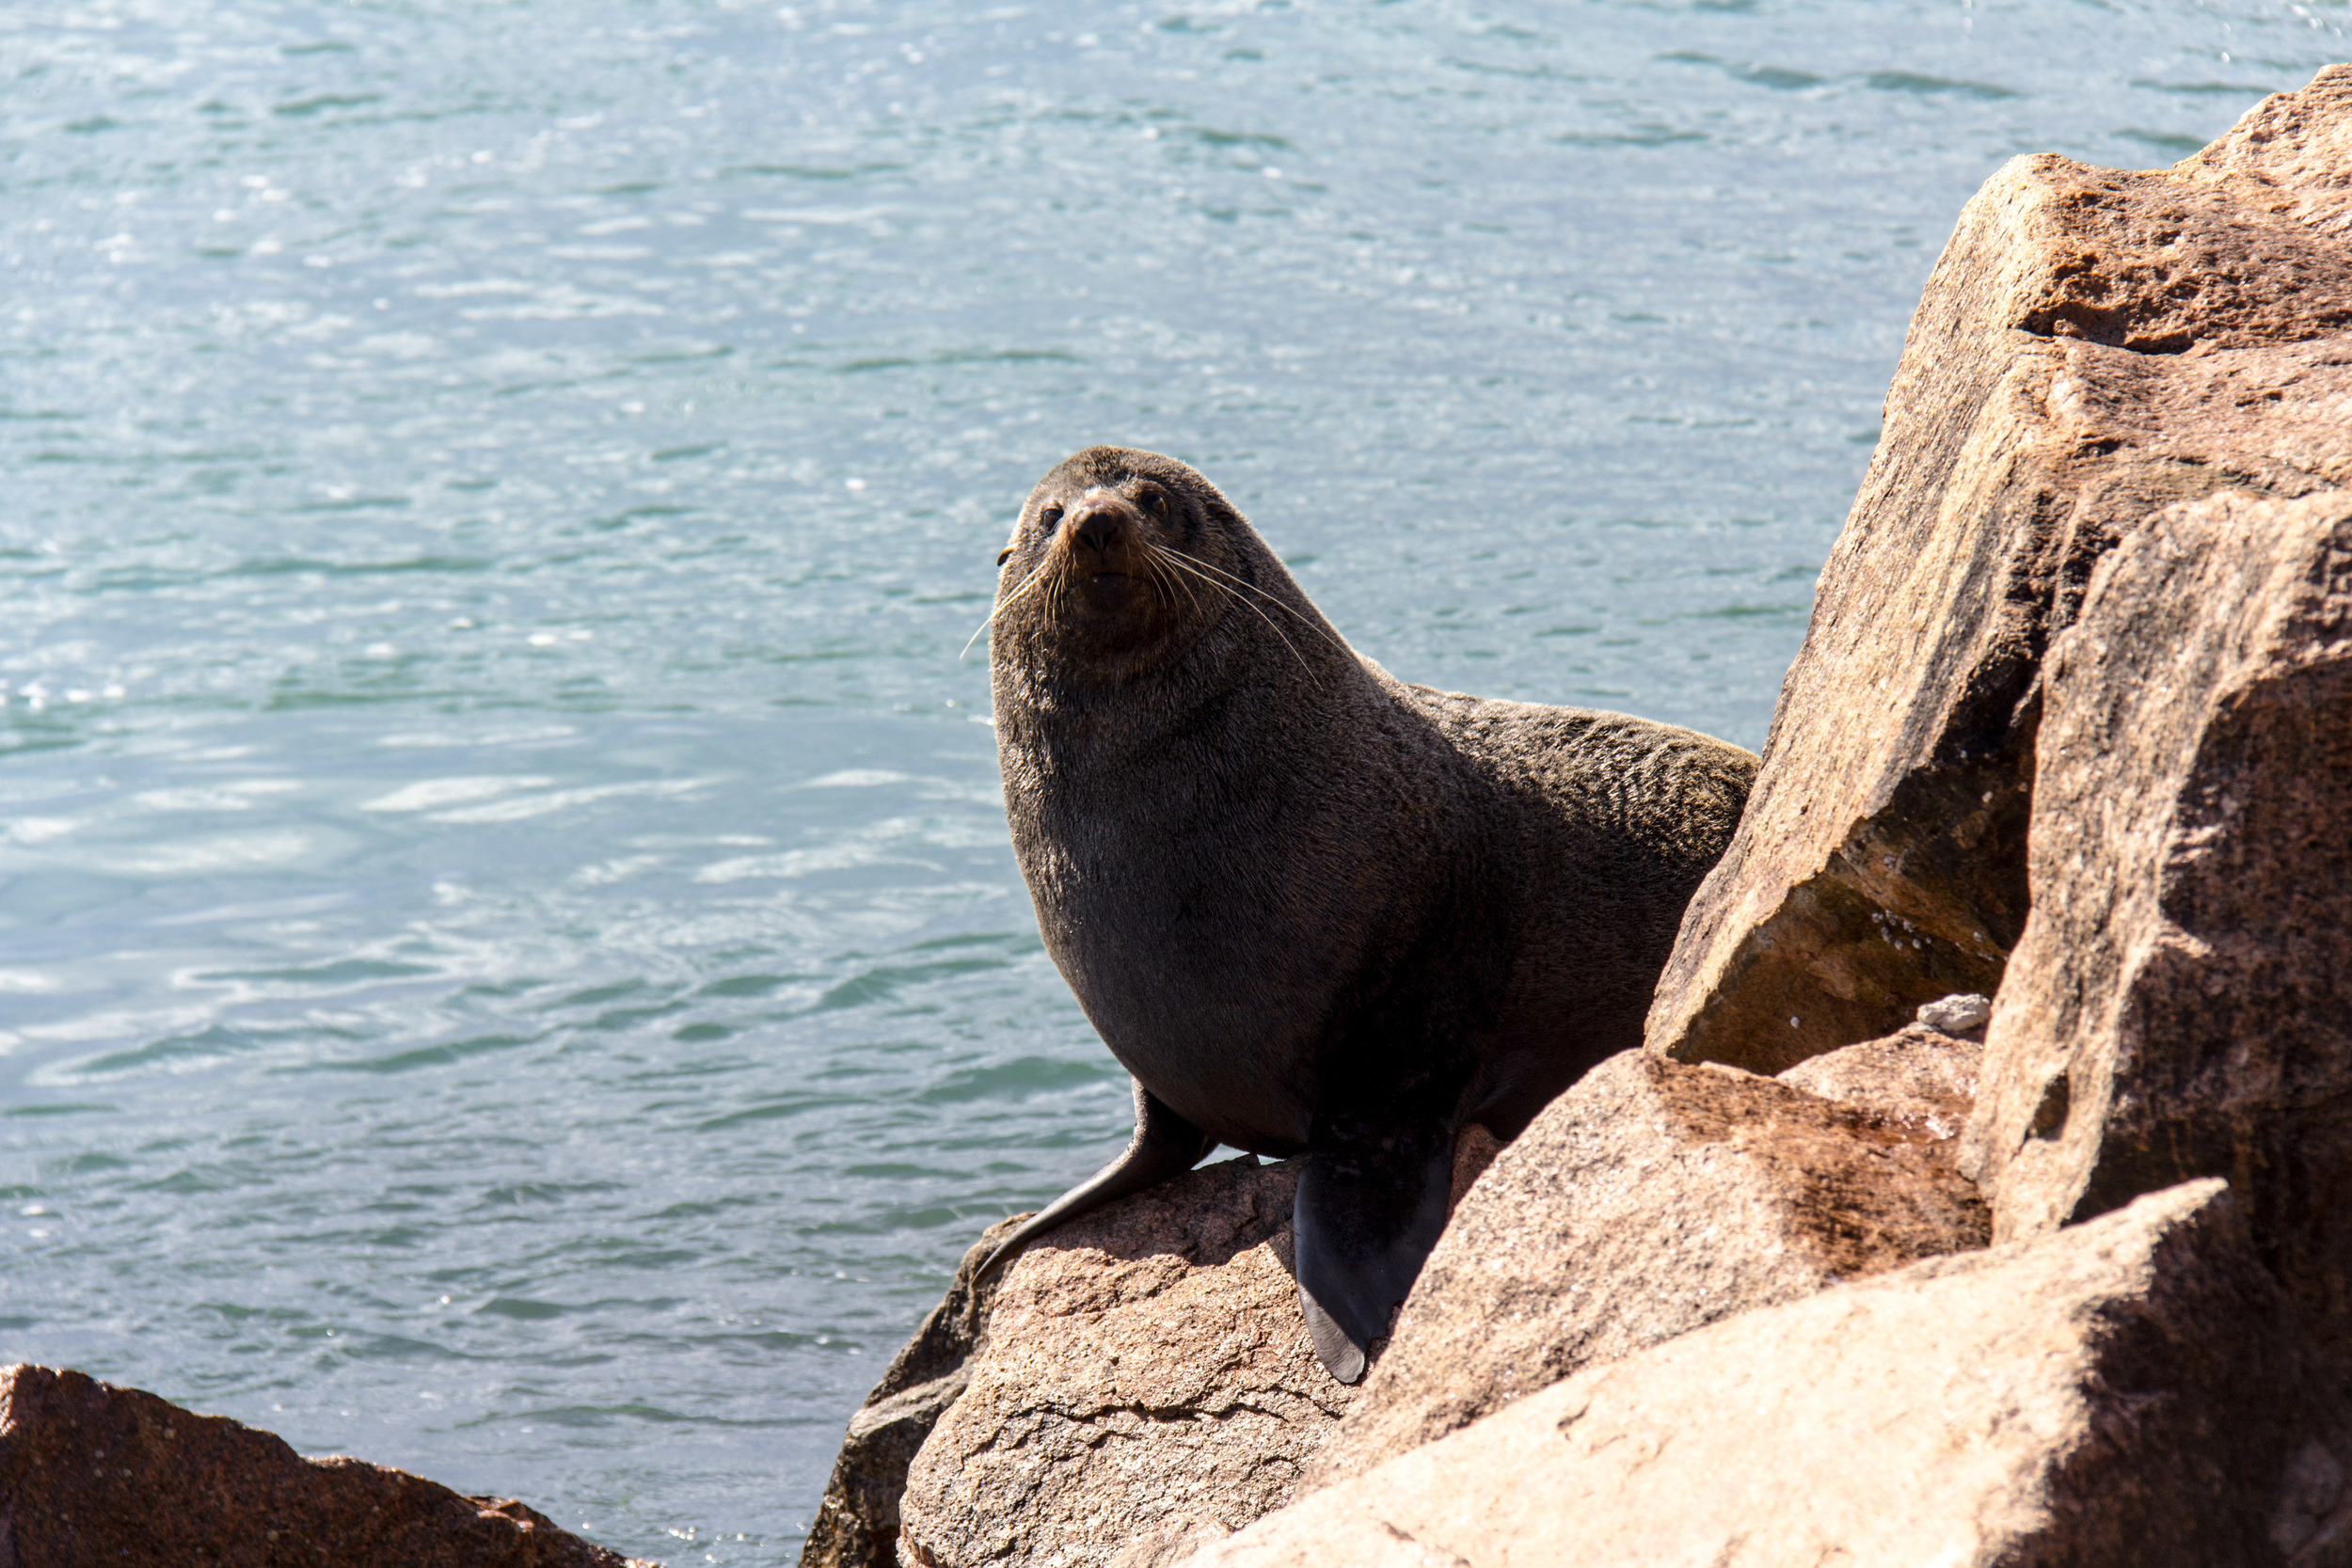 One of the sun baking seals i caught off guard at the Entrance ...